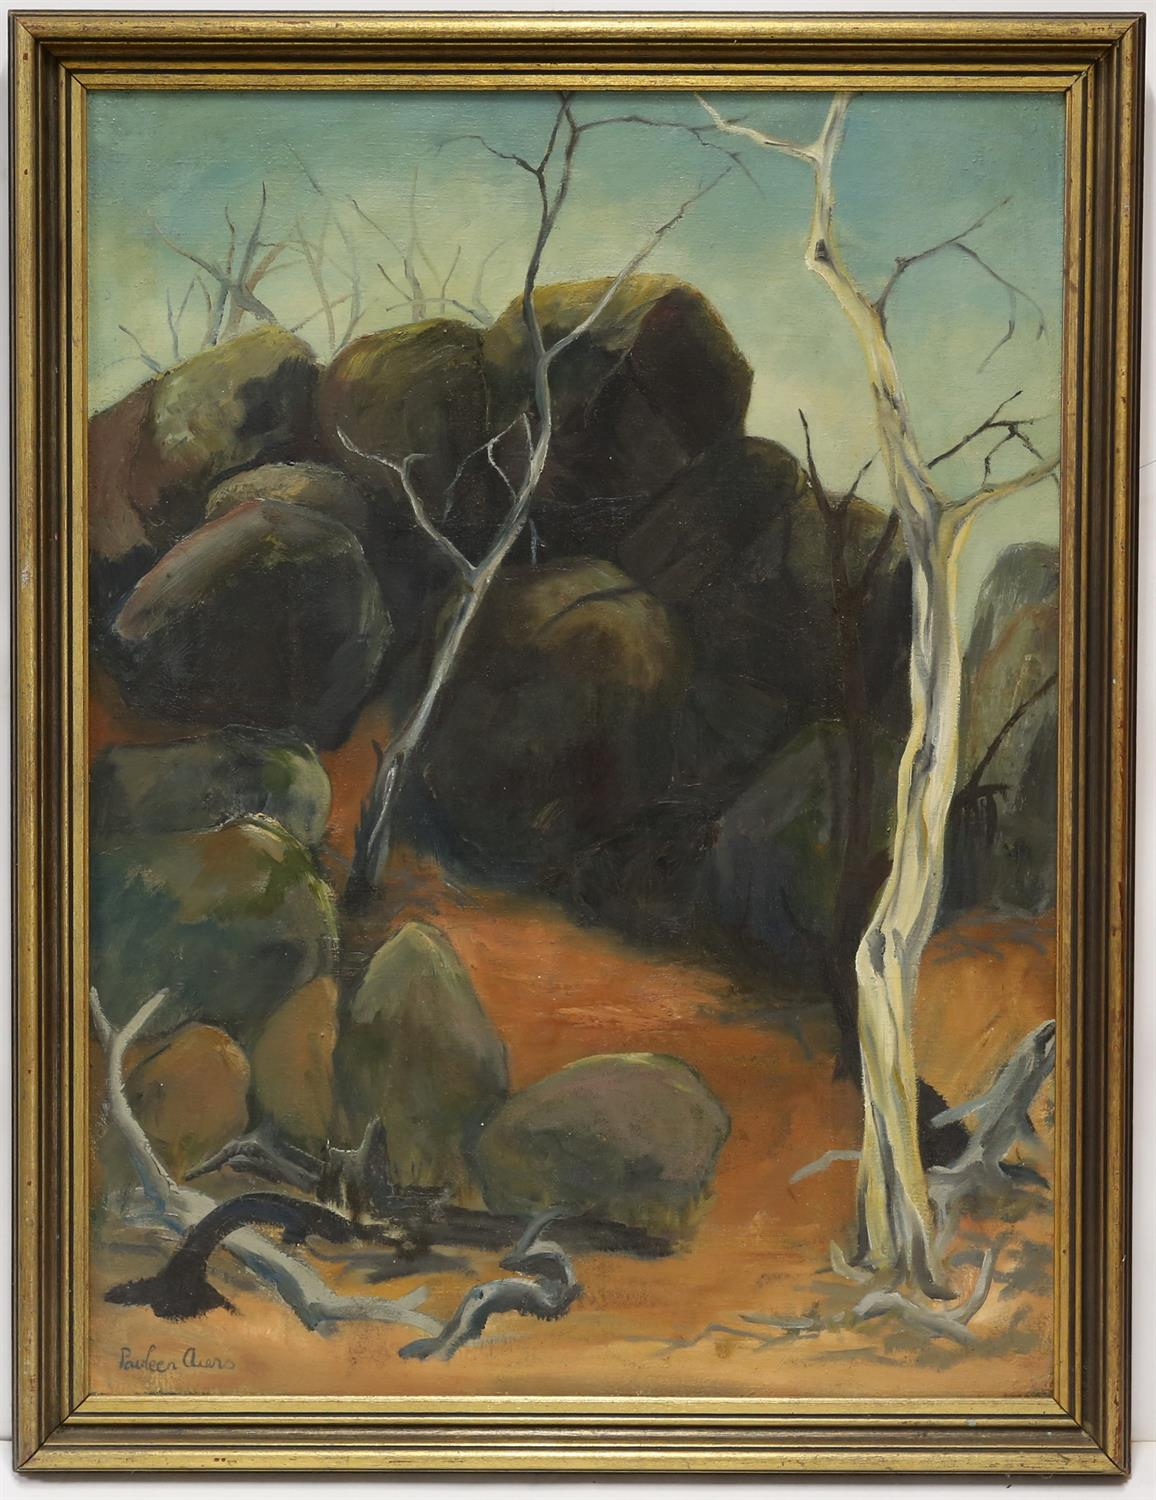 Pauleen Aiers (20th century) Rocky Gully, Gudgenby NSW. Oil on canvas, signed lower left, - Image 2 of 3